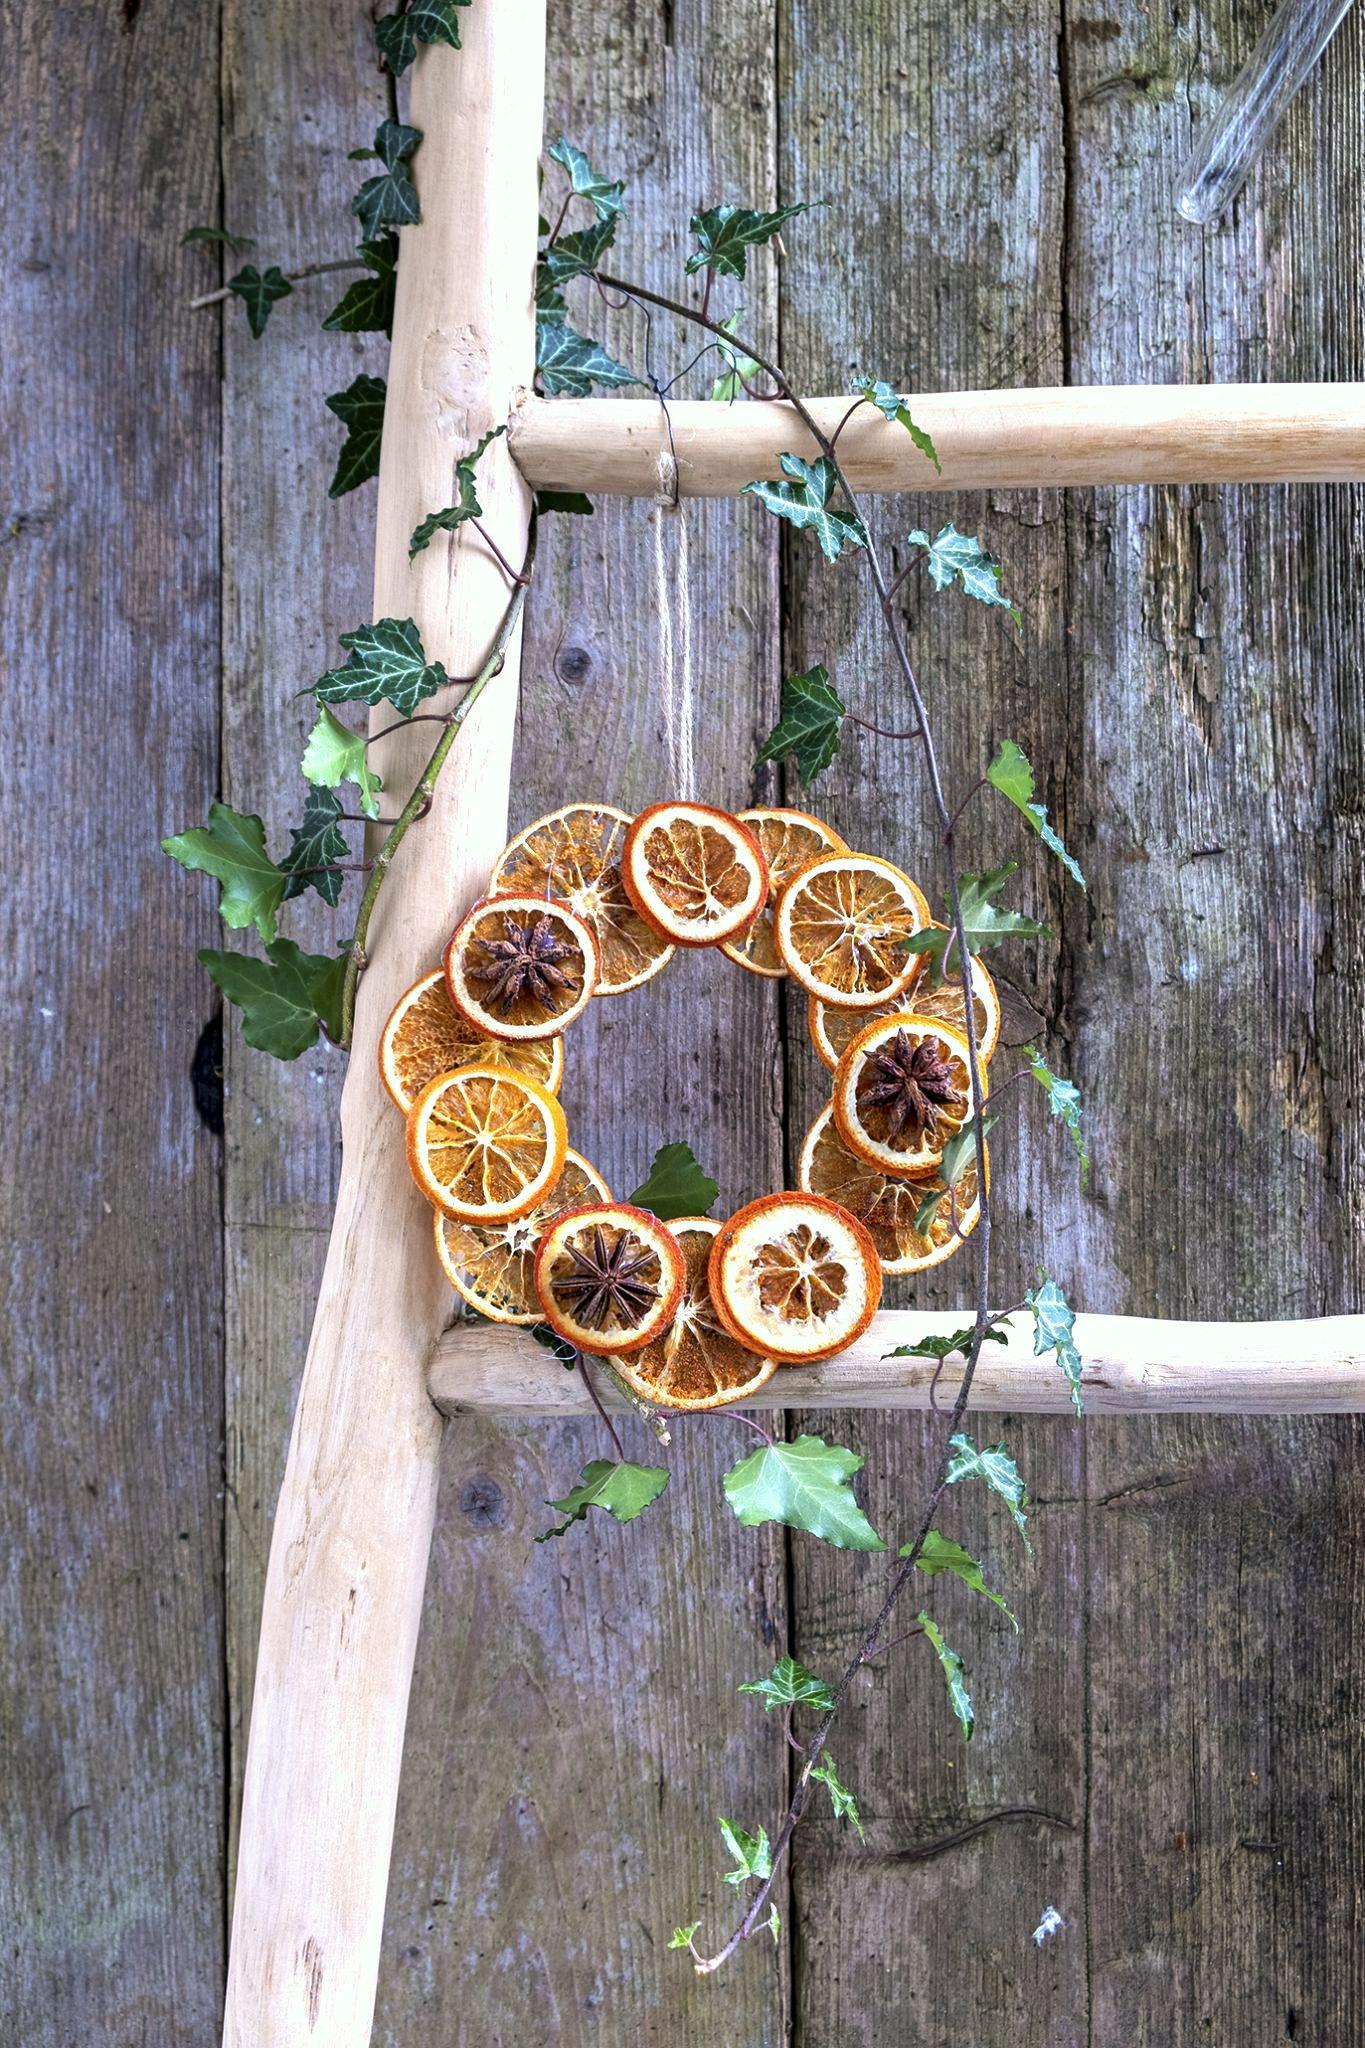 Dried orange wreath by Elsa R Blog, featured on DIY Salvaged Junk Projects 539 on Funky Junk!